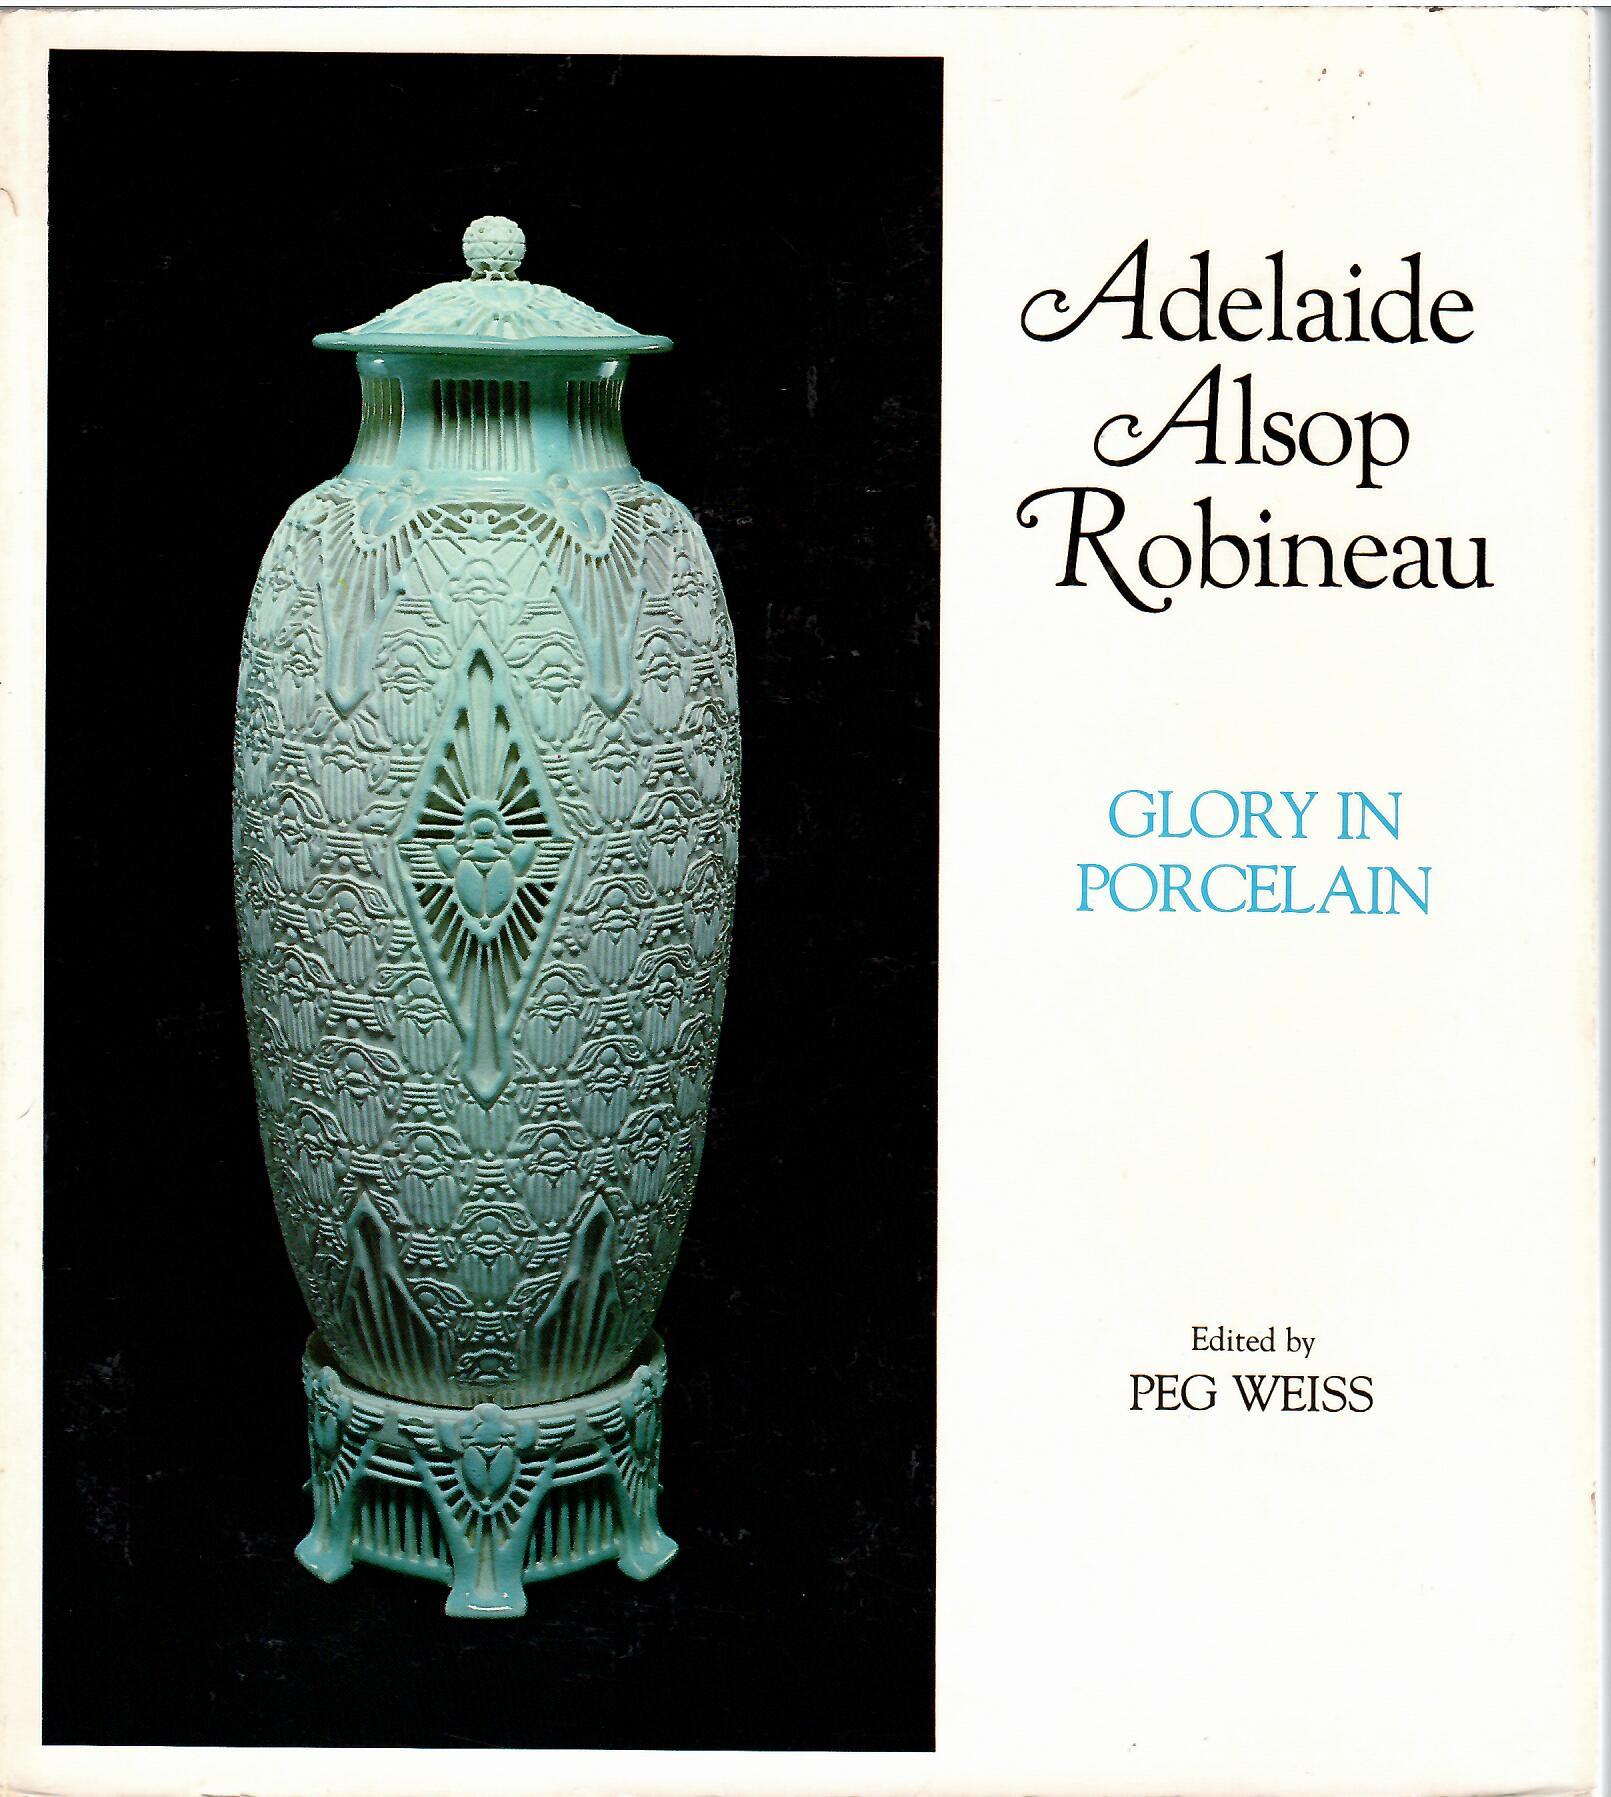 Image for Glory in Porcelain; ADELAIDE ALSOP ROBINEAU